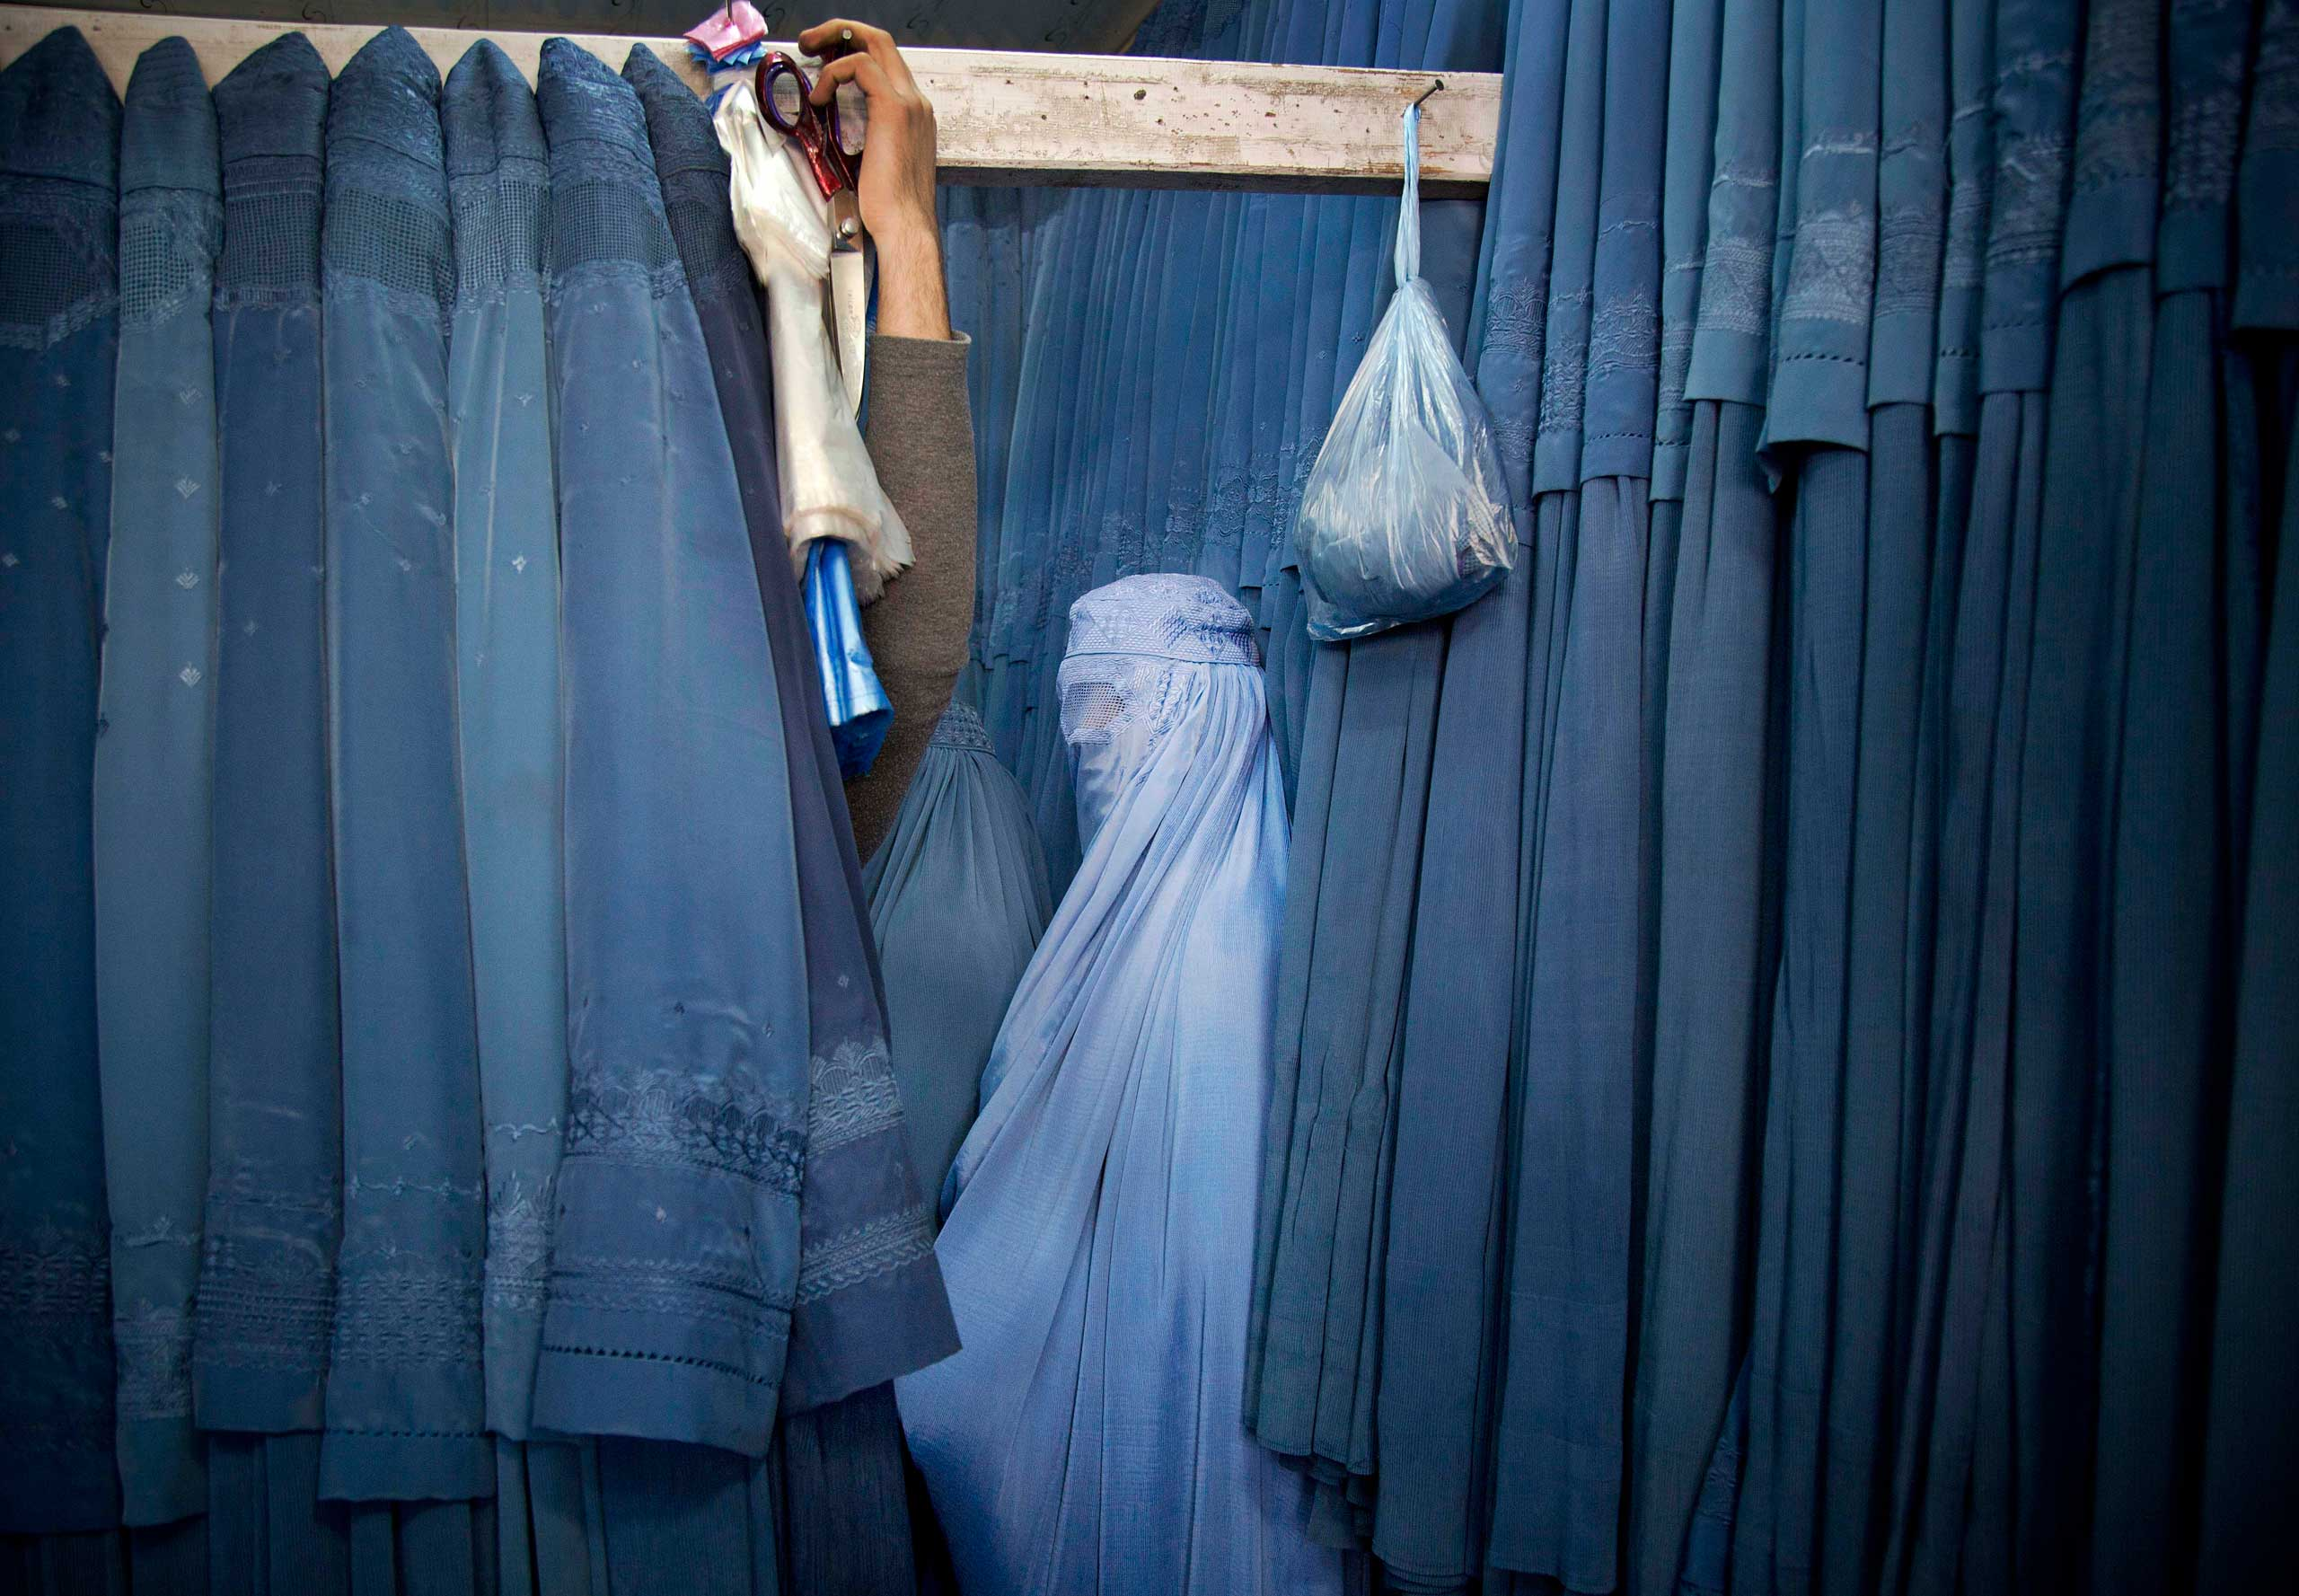 An Afghan woman waits in a changing room to try out a new Burqa, in a shop at in the old city of Kabul, April 11, 2013.